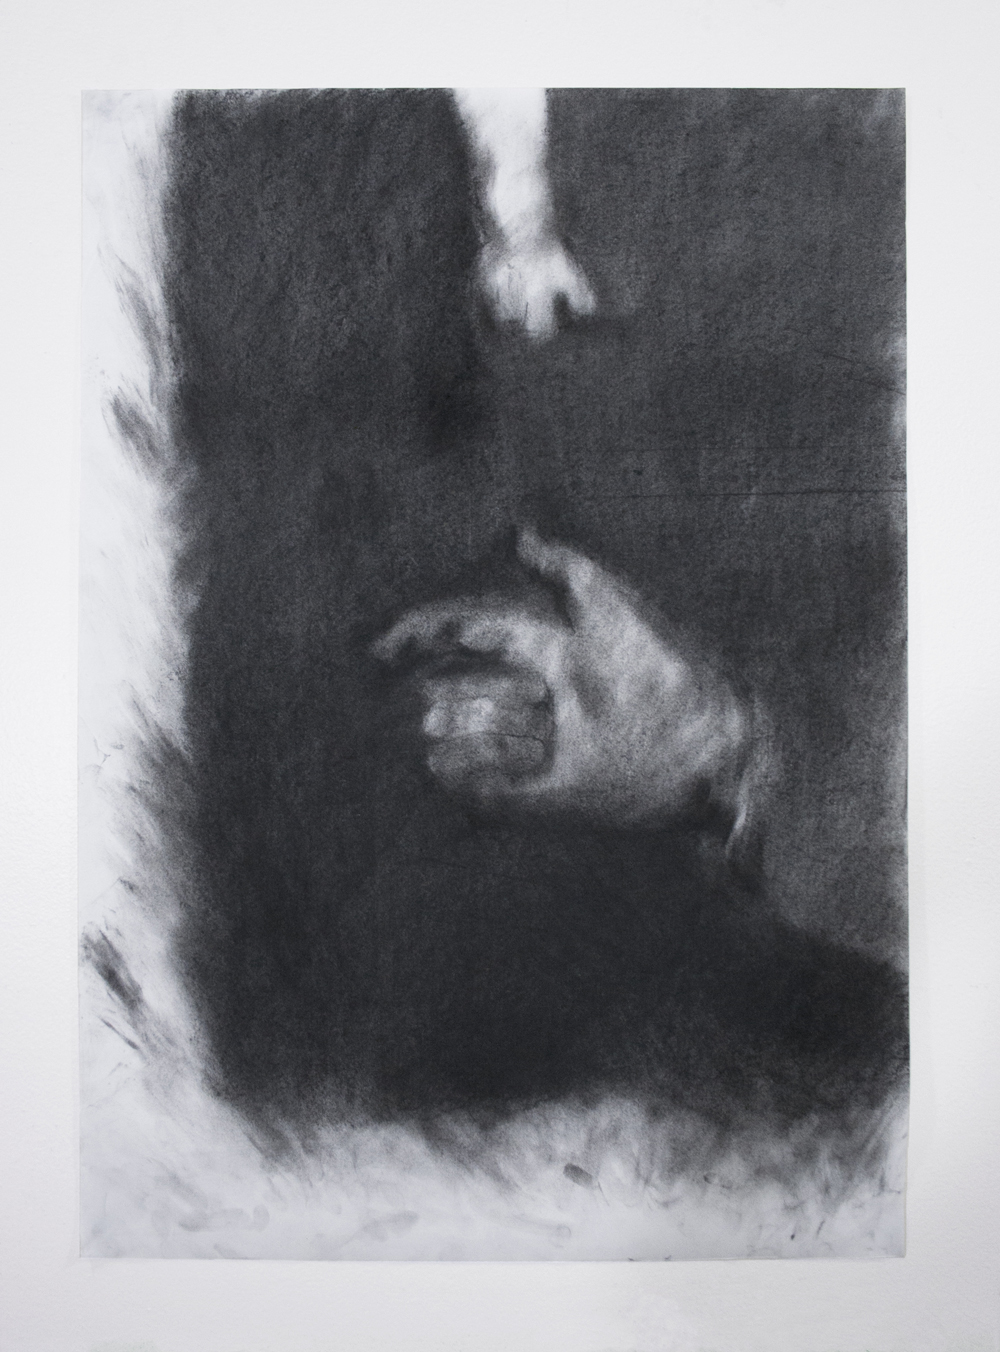 Finger Bather II  | Charcoal on paper | 18 x 24"